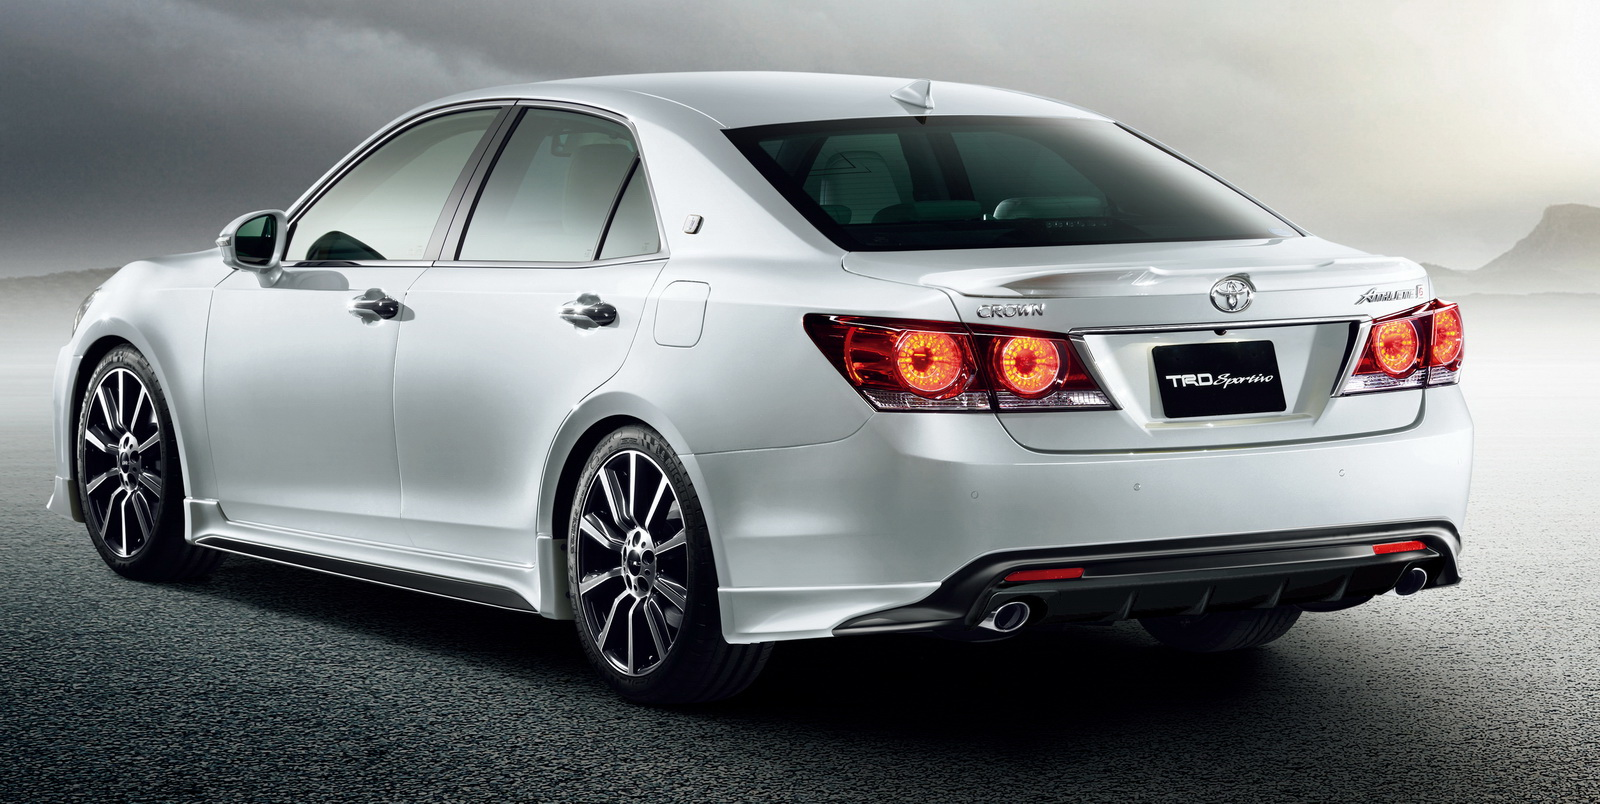 2016 Toyota Crown Facelift Receives Trd Styling Kits Paul Tan Image 390395